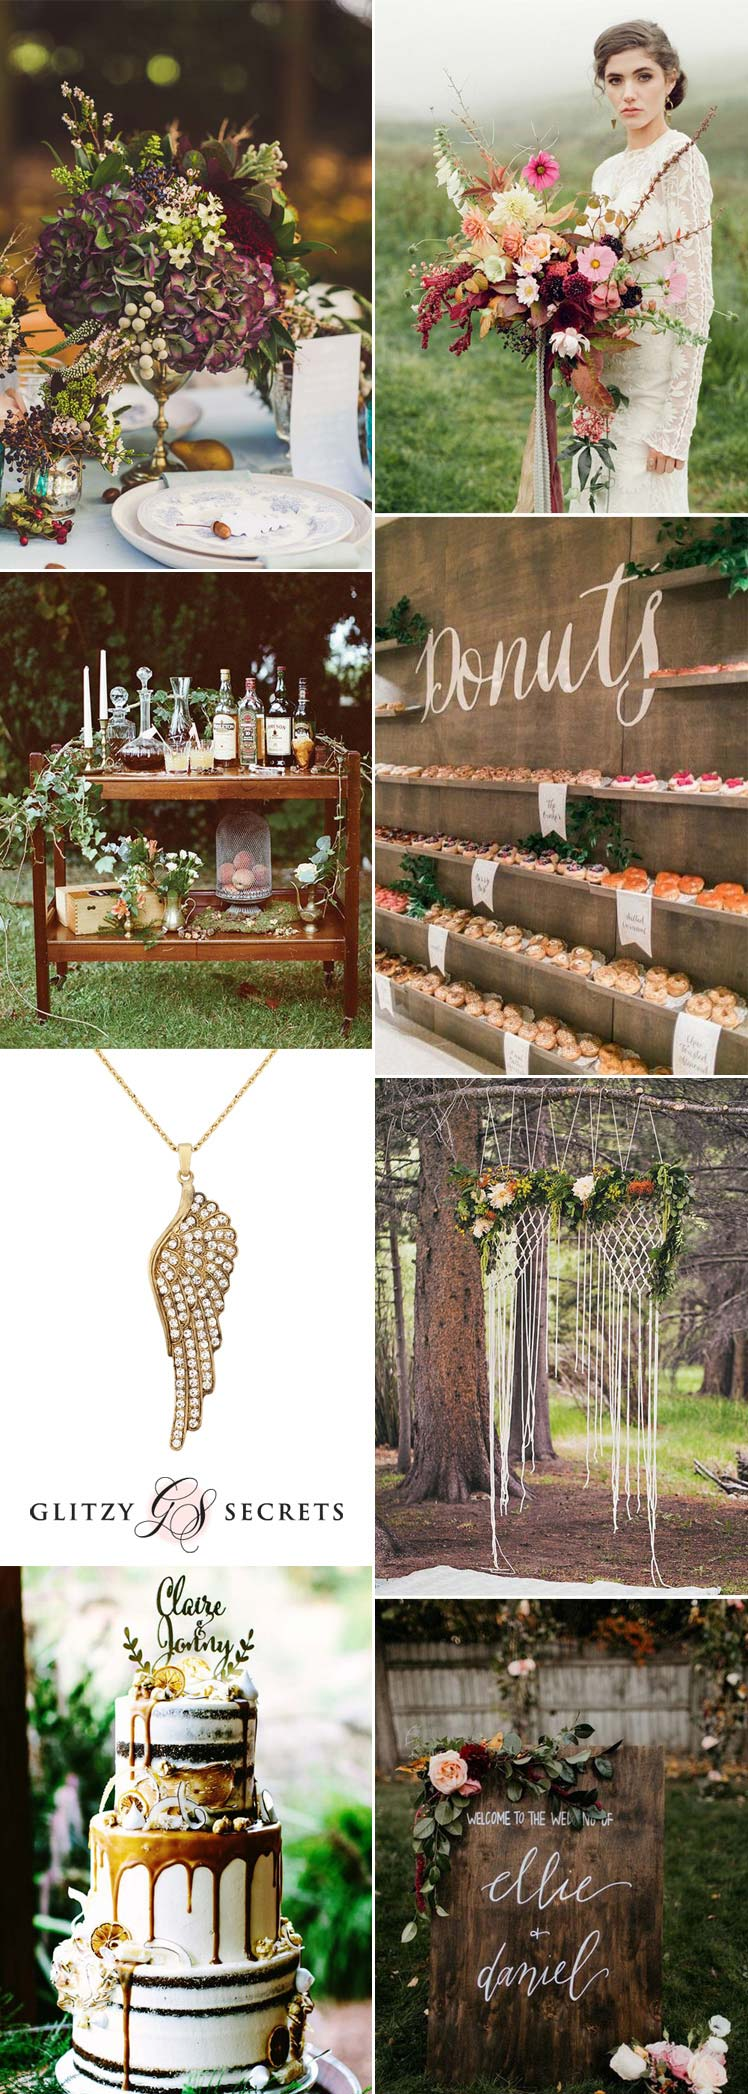 Beautiful autumn boho wedding ideas